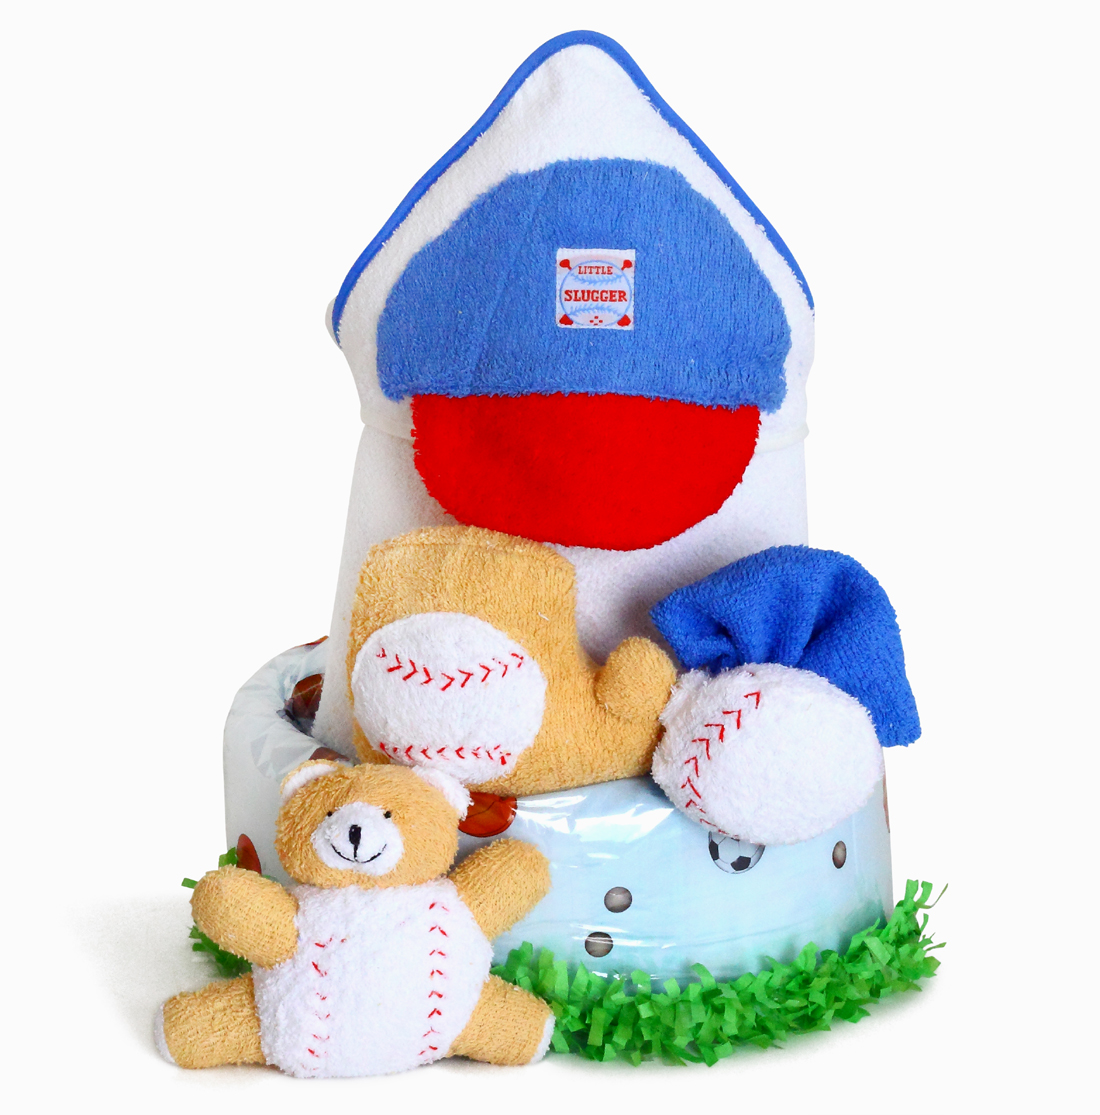 Little Slugger Diaper Cake Baby Boy Gift